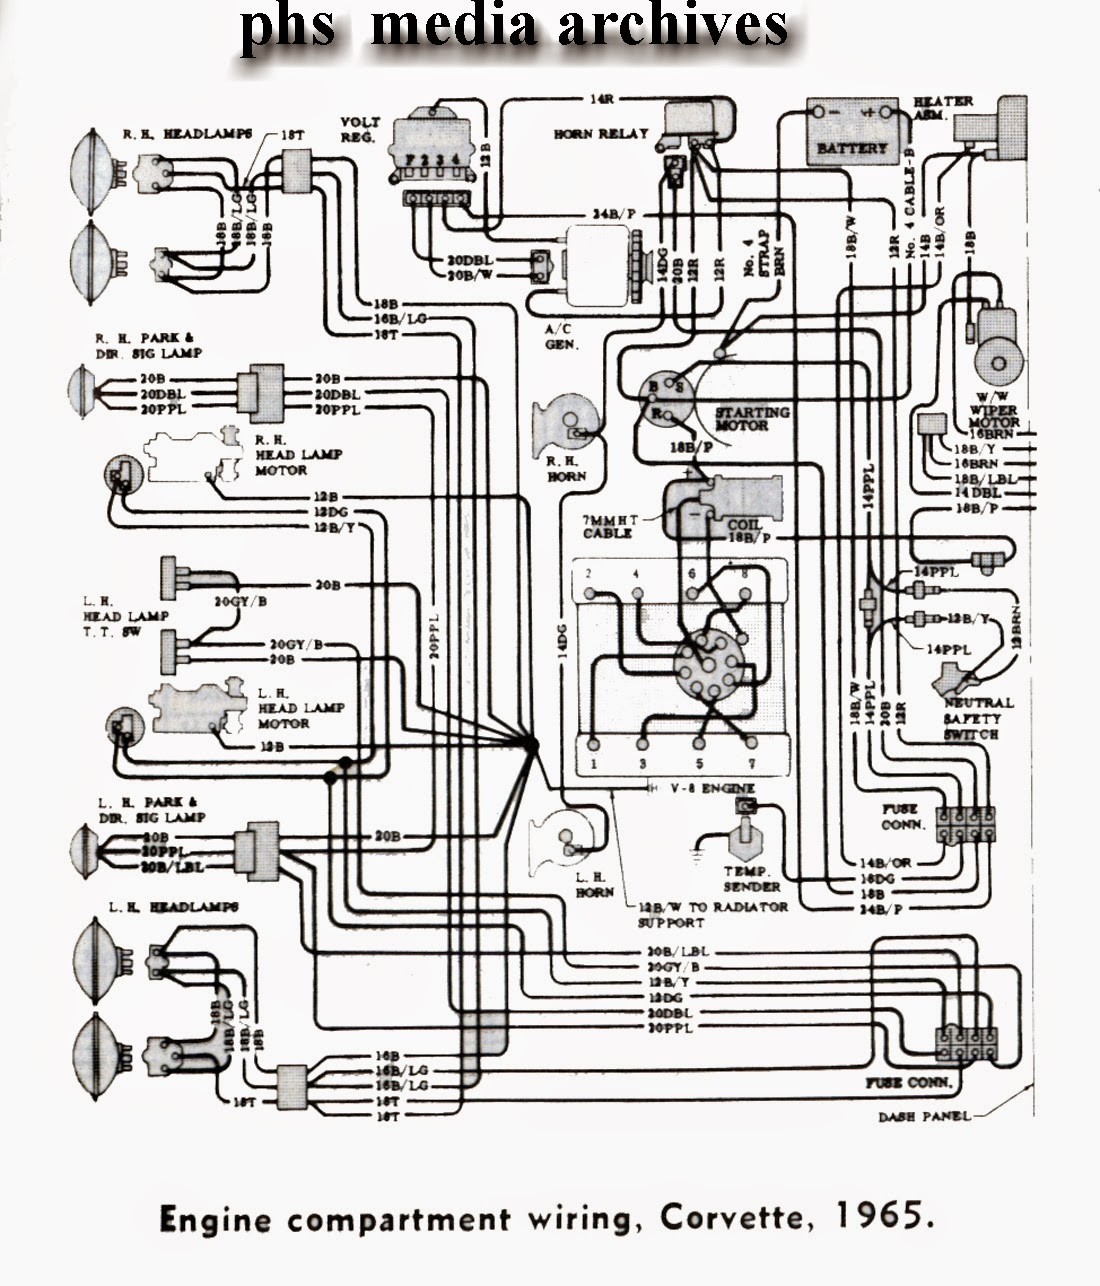 67 gto fuse box wiring diagram wiring library 67 gtx 1966 gto fuse panel diagram opinions [ 1100 x 1286 Pixel ]